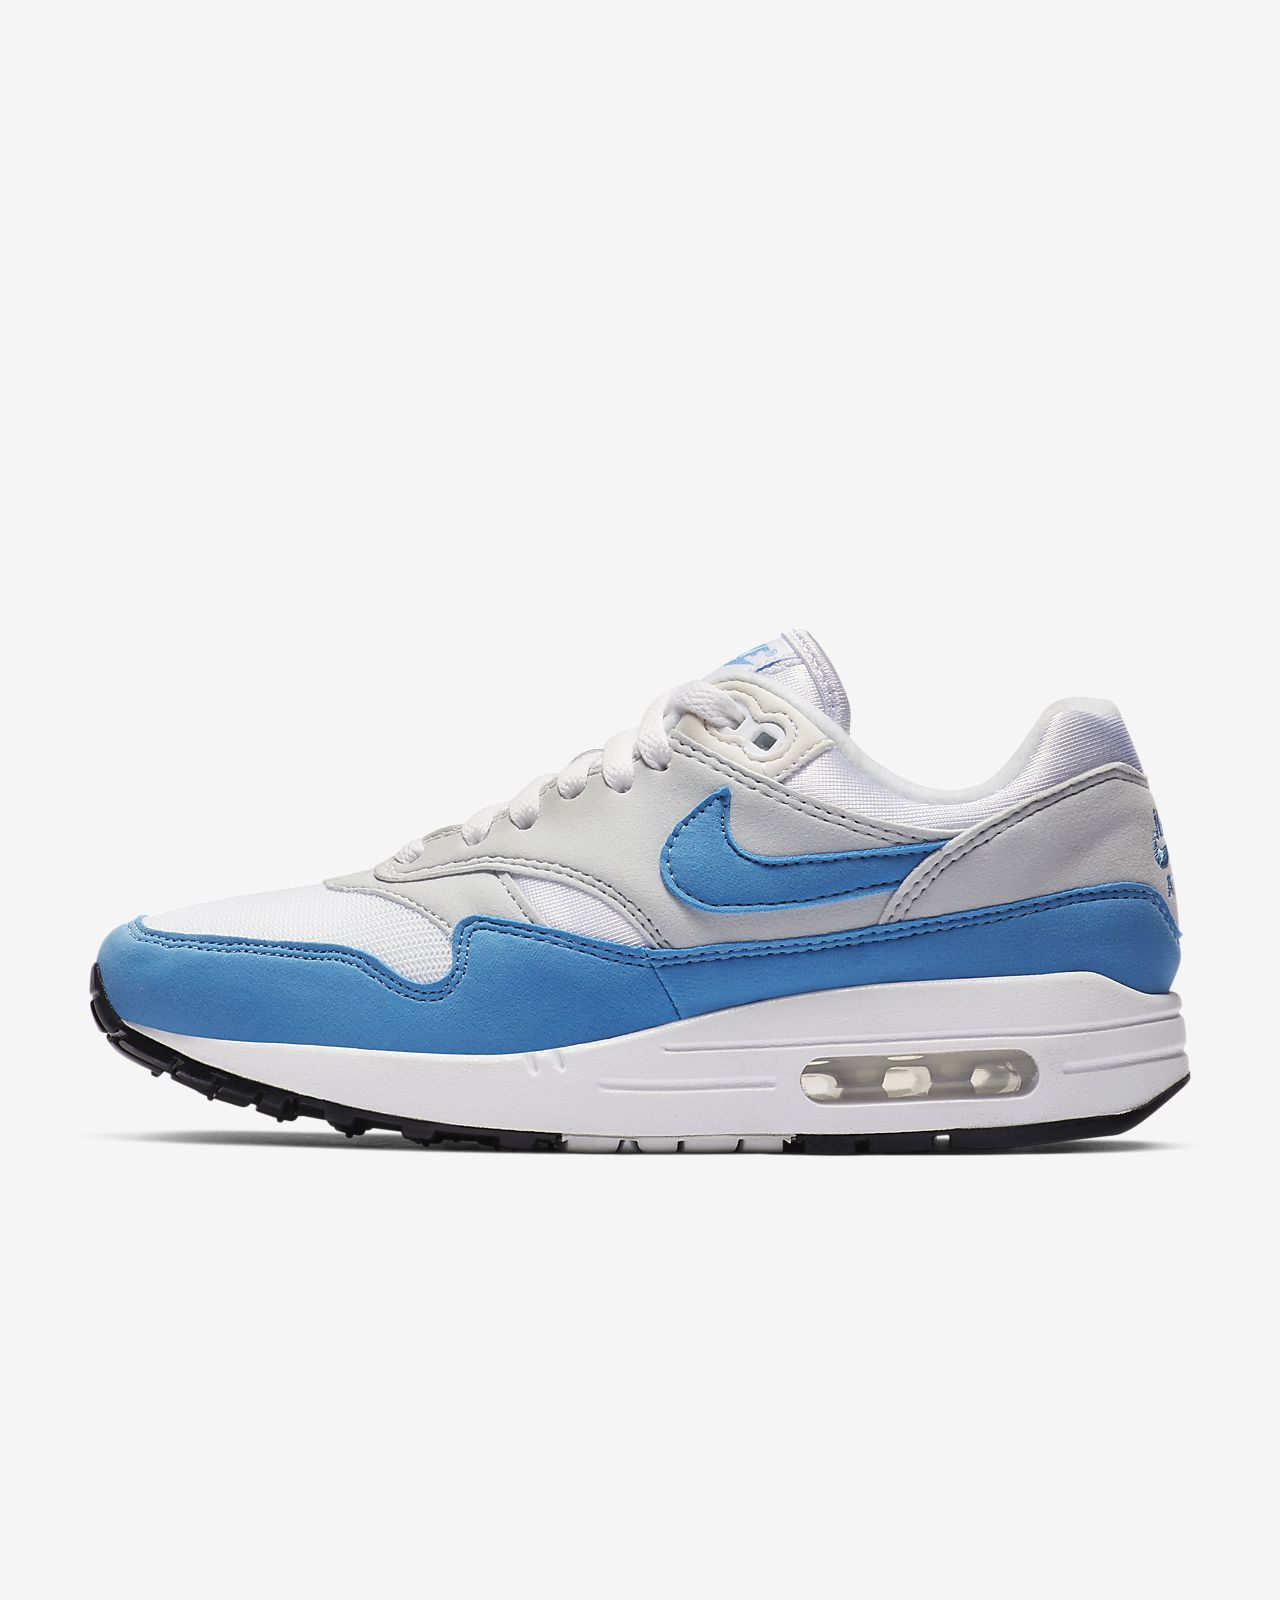 on sale 56021 8885e ... Chaussure Nike Air Max 1 Essential pour Femme